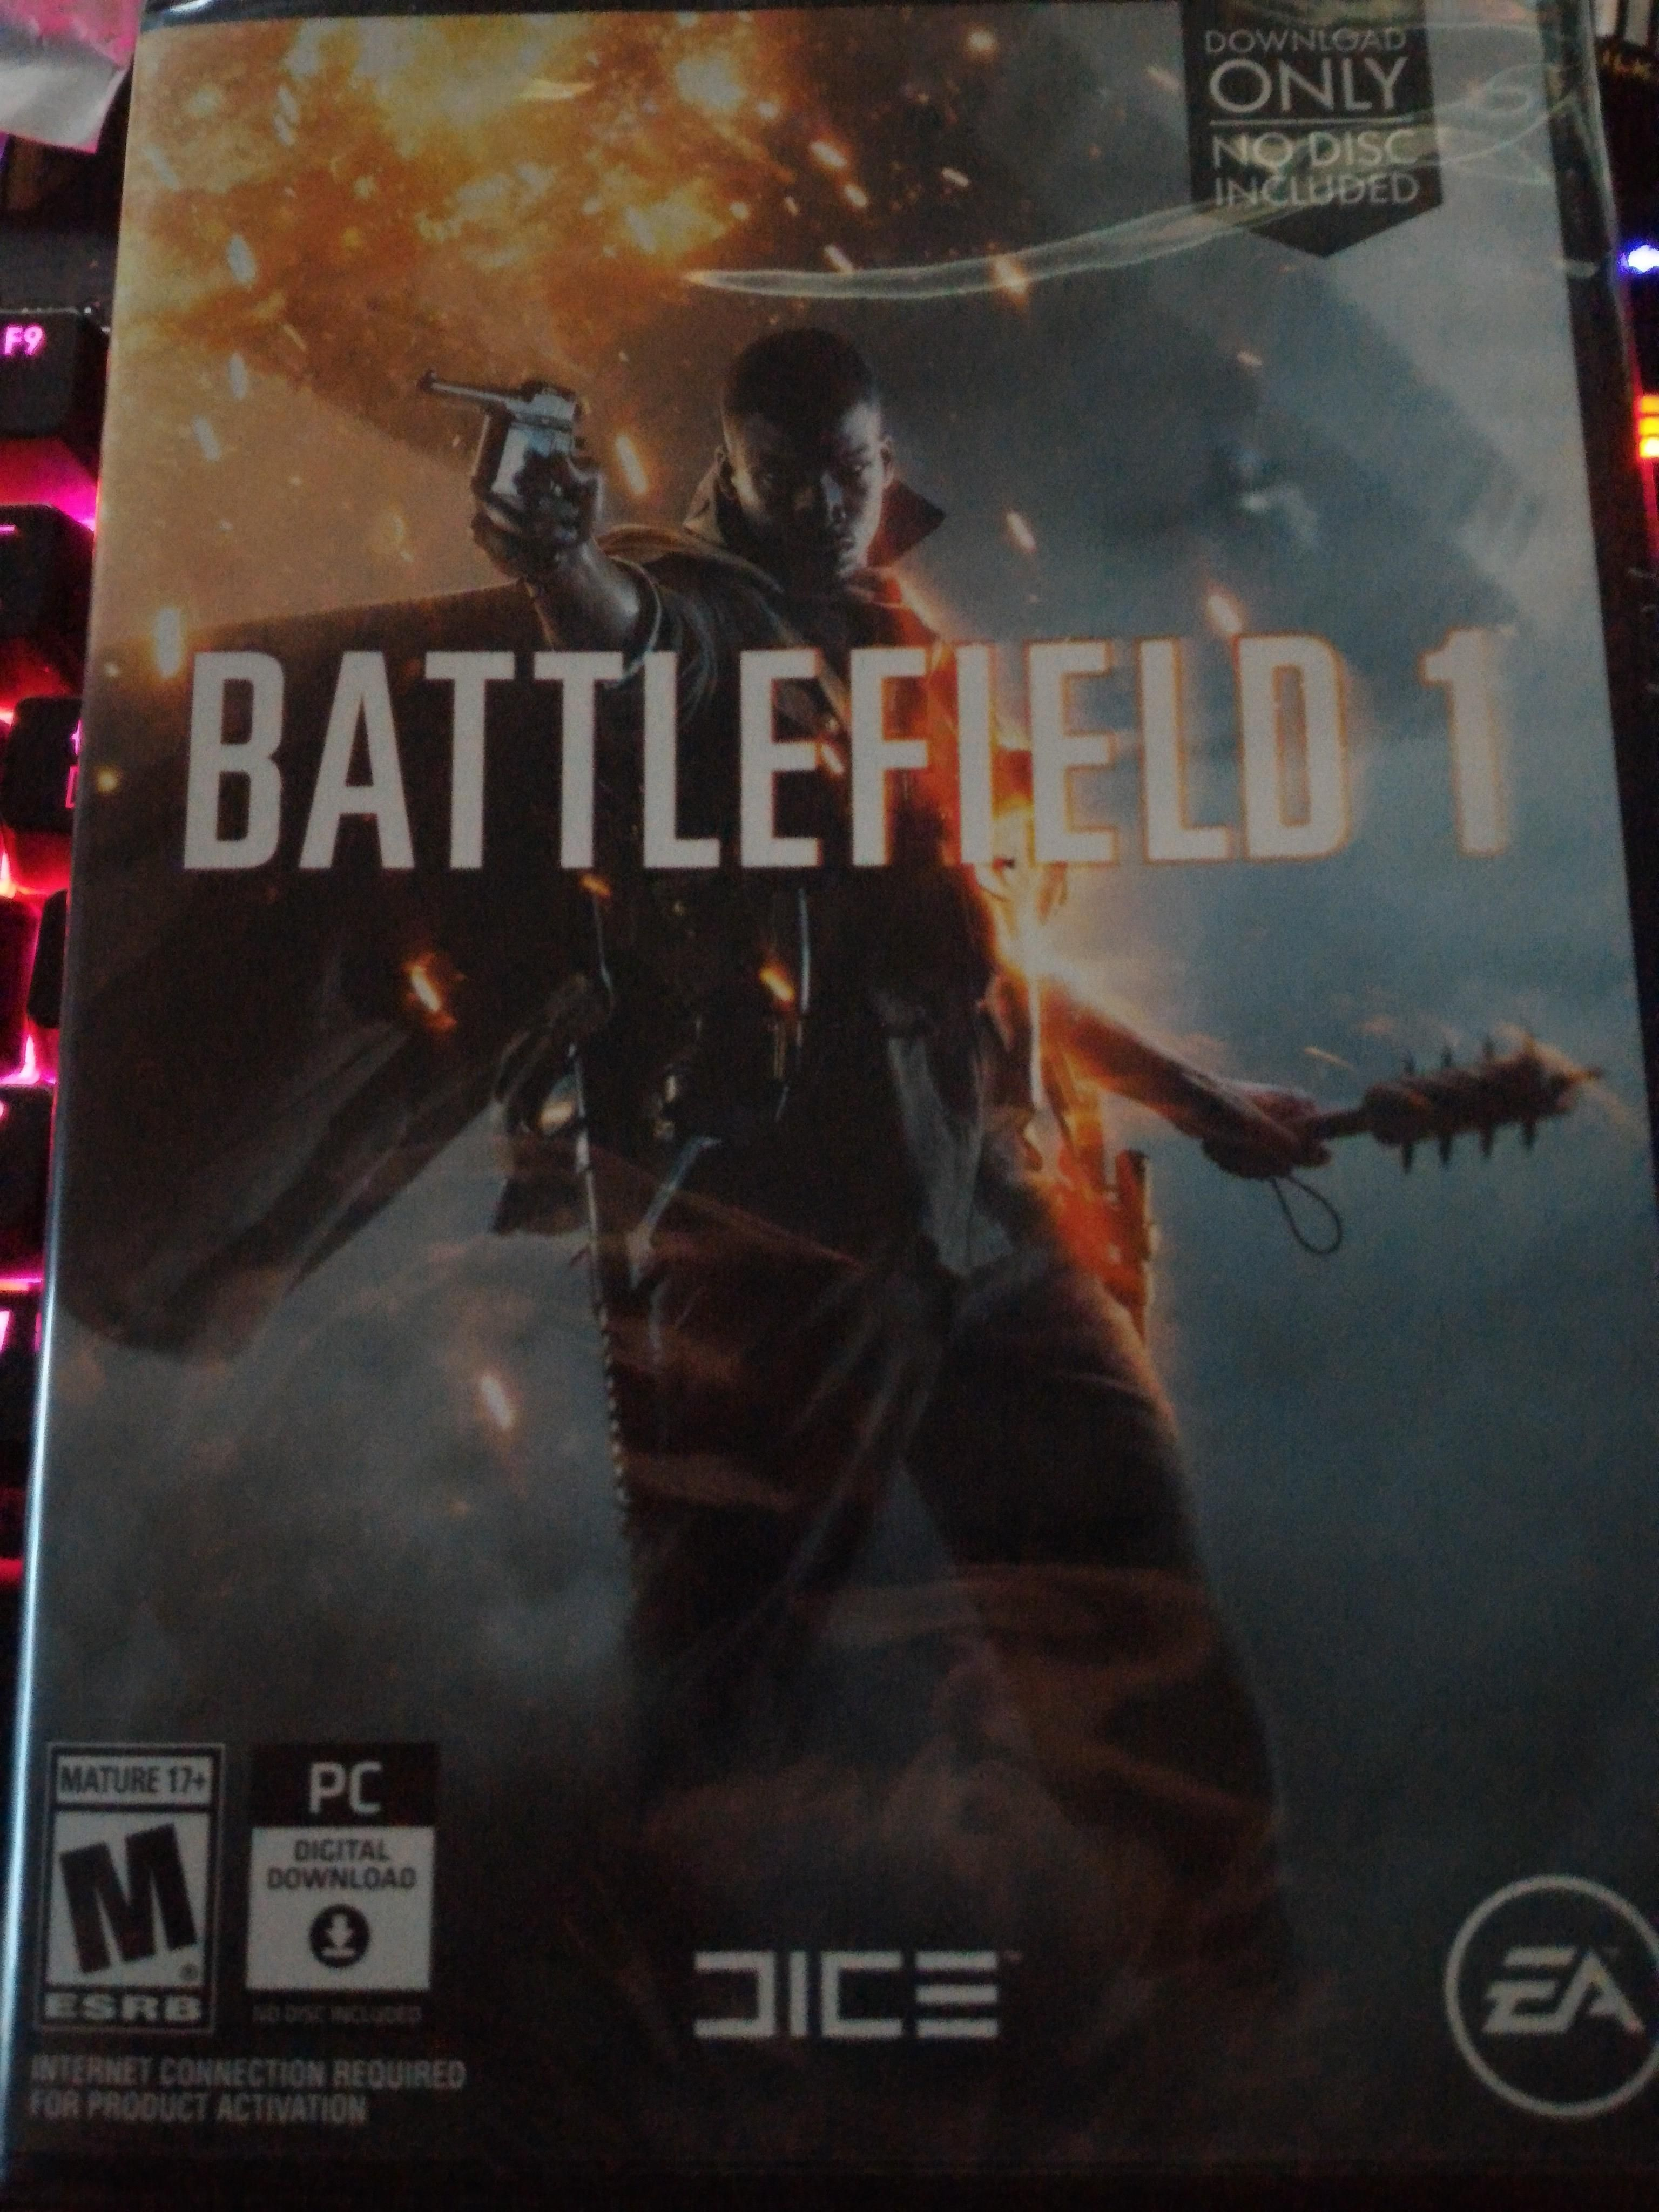 I bought battlefield 1 on black Friday and I had to wait for it to